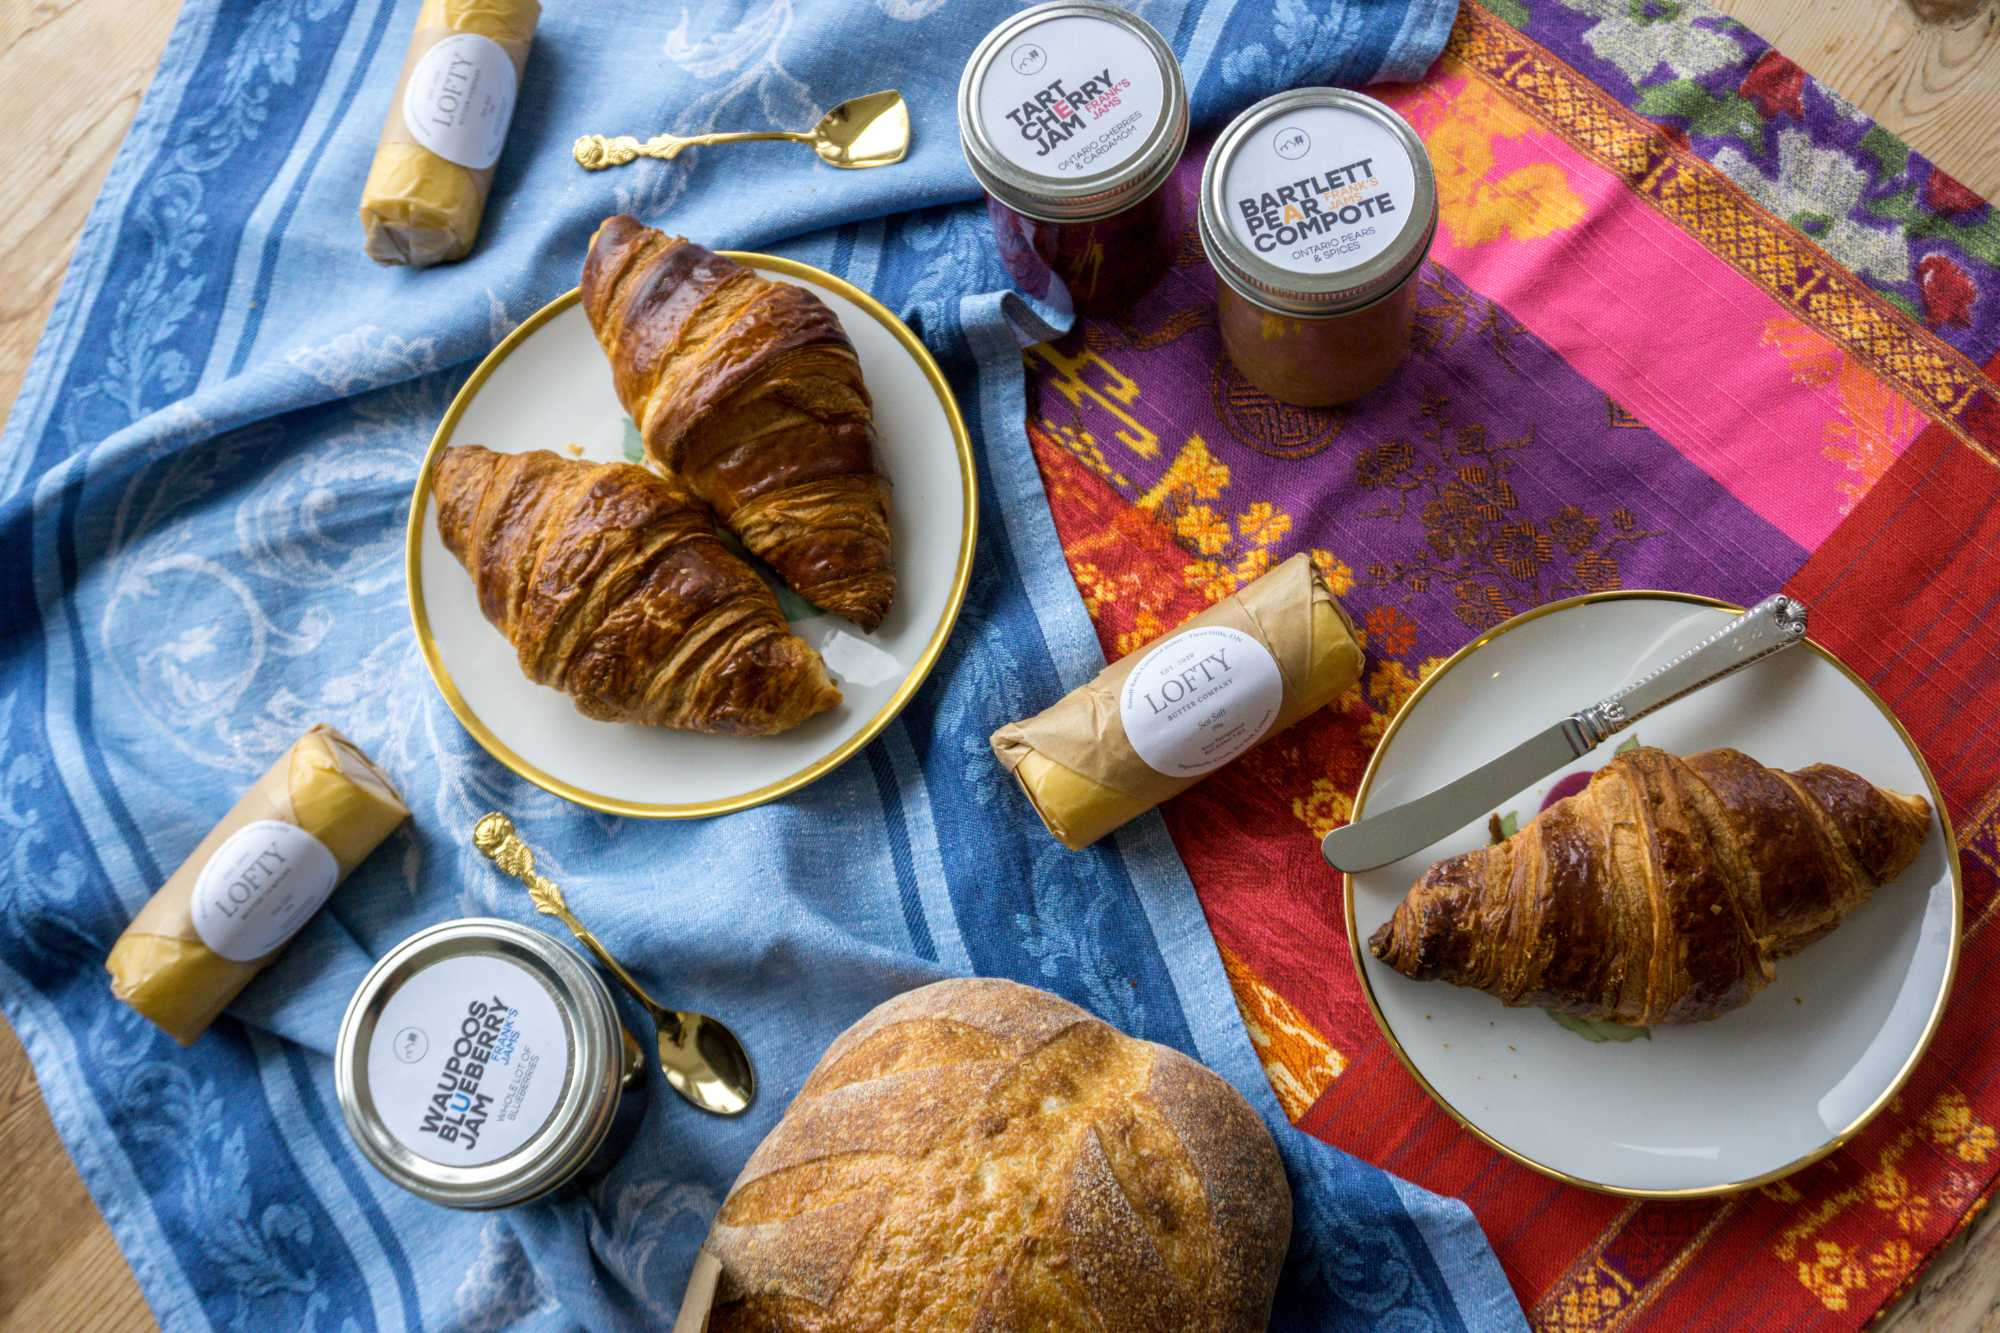 Croissants and preserves on a colourful blanket; part of a typical breakfast at The Empty Nest in Prince Edward County